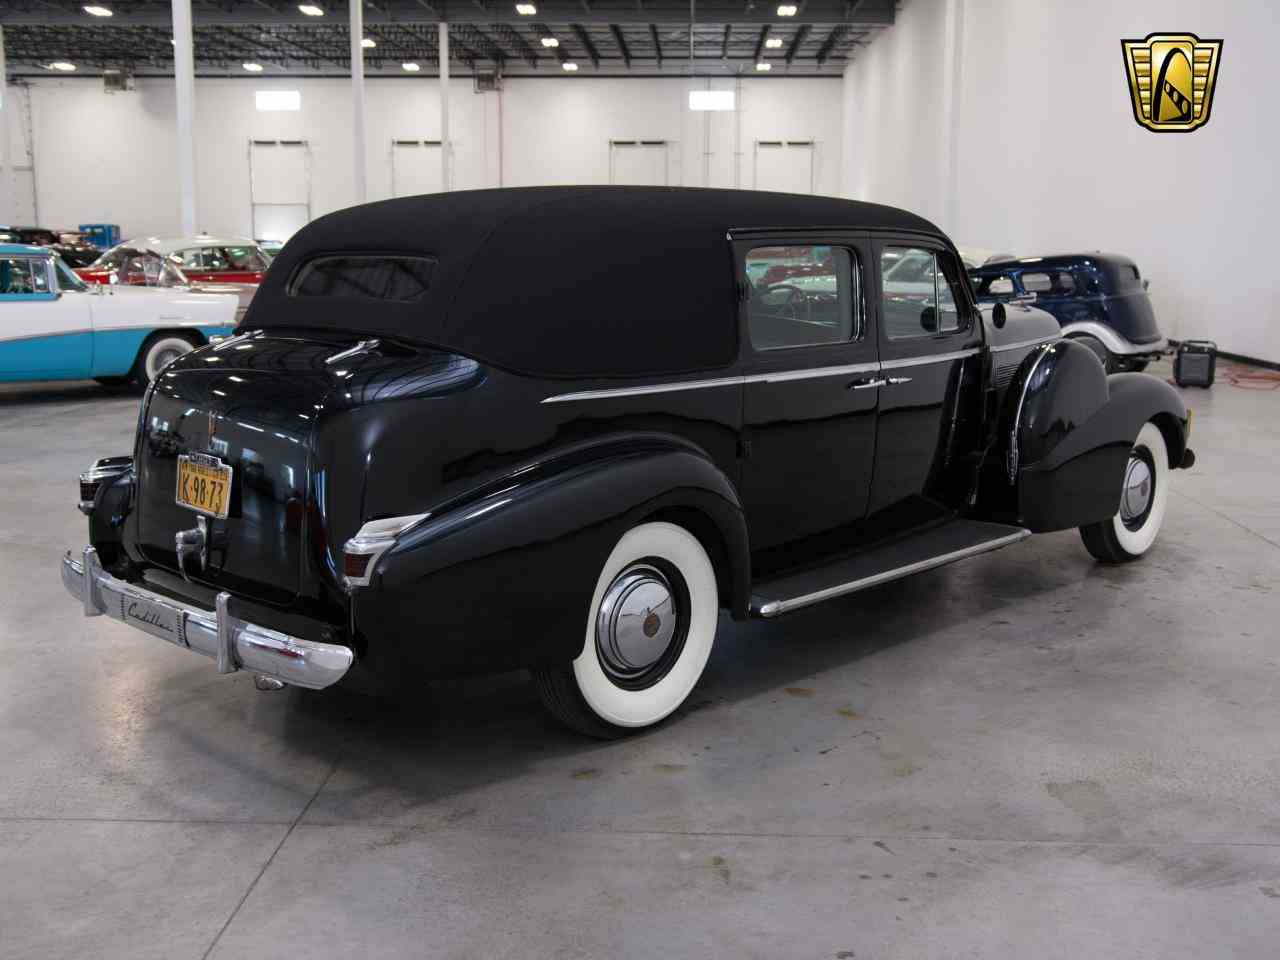 Large Picture of Classic 1939 Cadillac 7 Passenger Touring W/ Trunk - $58,000.00 Offered by Gateway Classic Cars - Milwaukee - KHP0